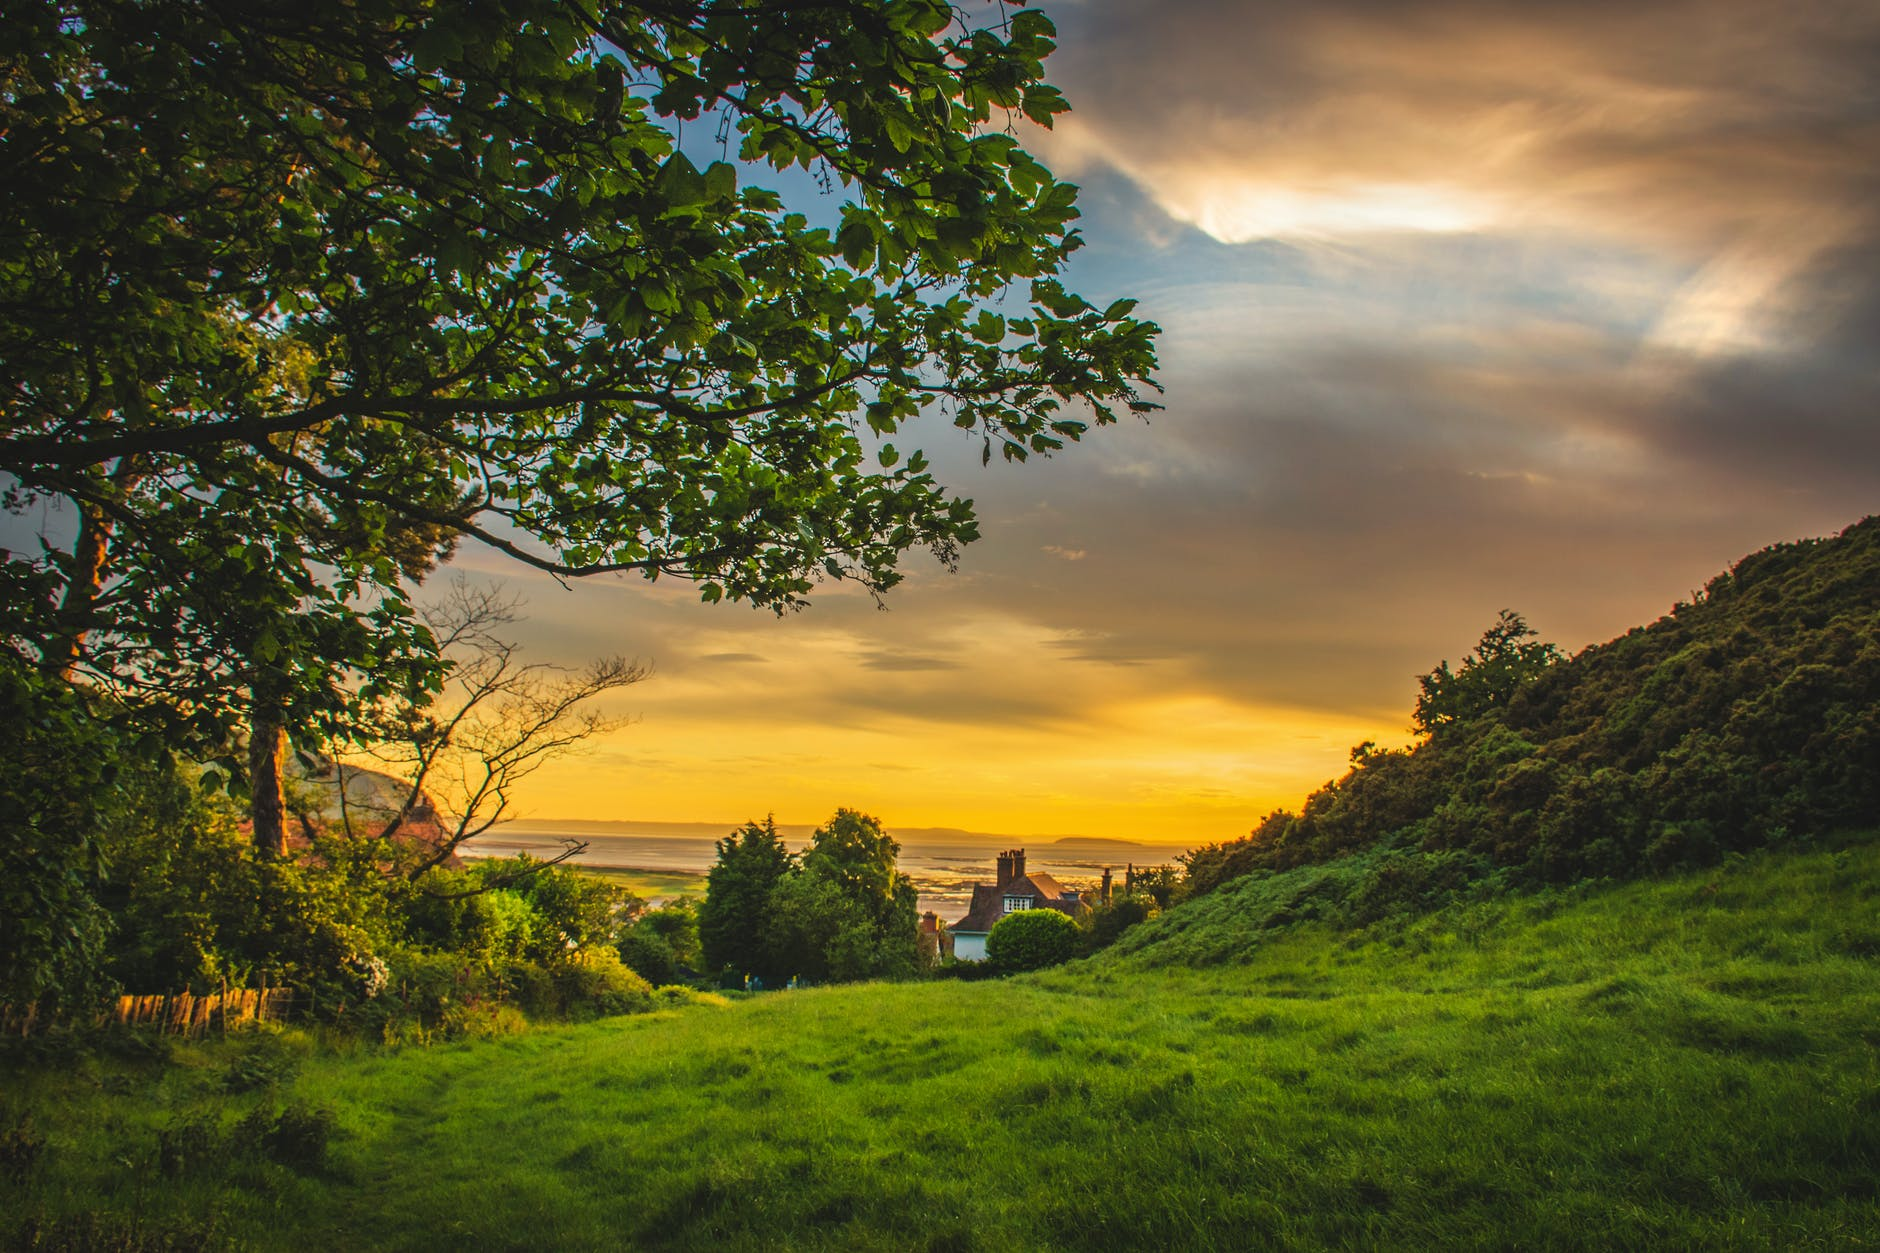 green trees under blue and orange sky during sunset